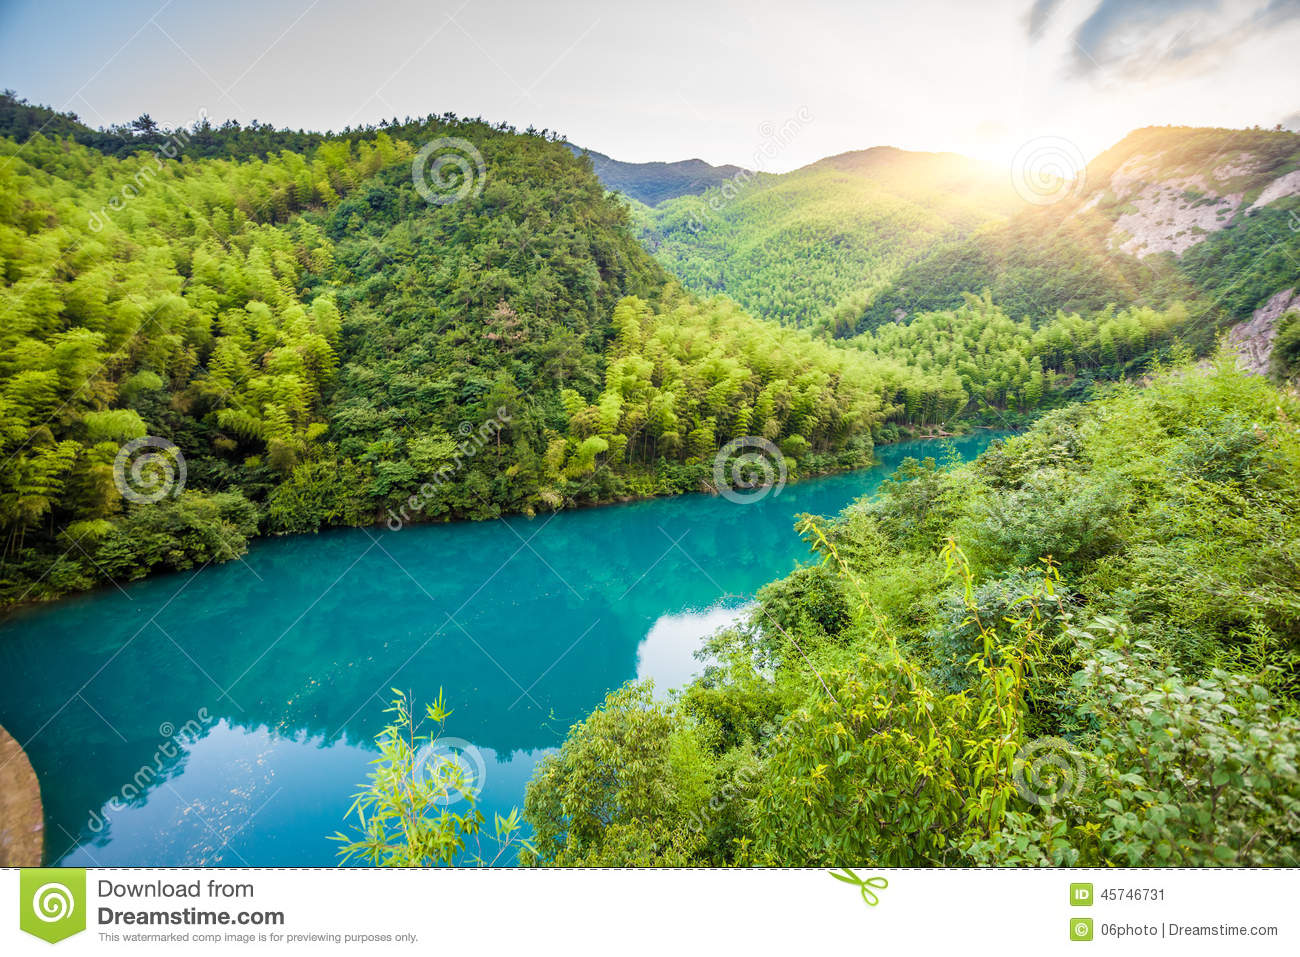 Mountains under the blue lake